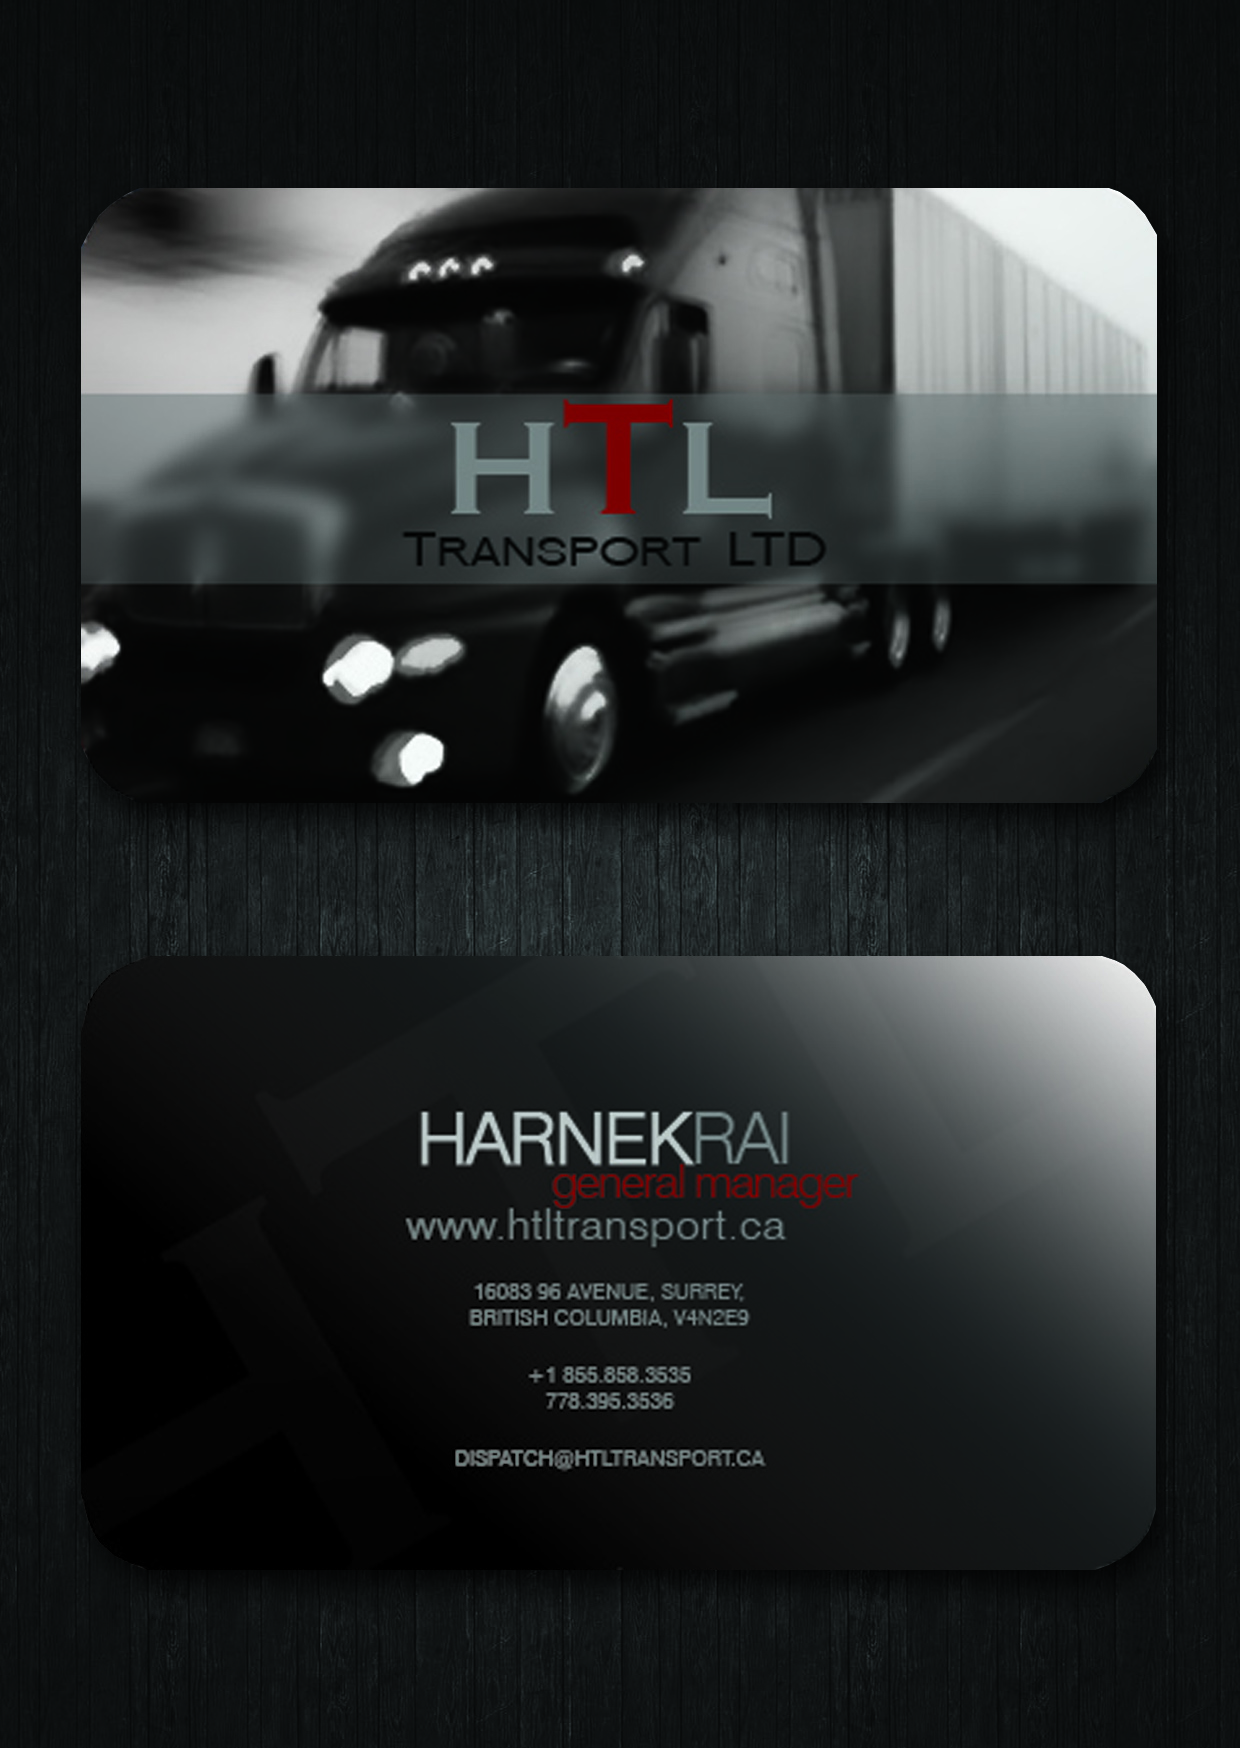 Business card design contests fun business card design for htl business card design by private user entry no 16 in the business card design reheart Images